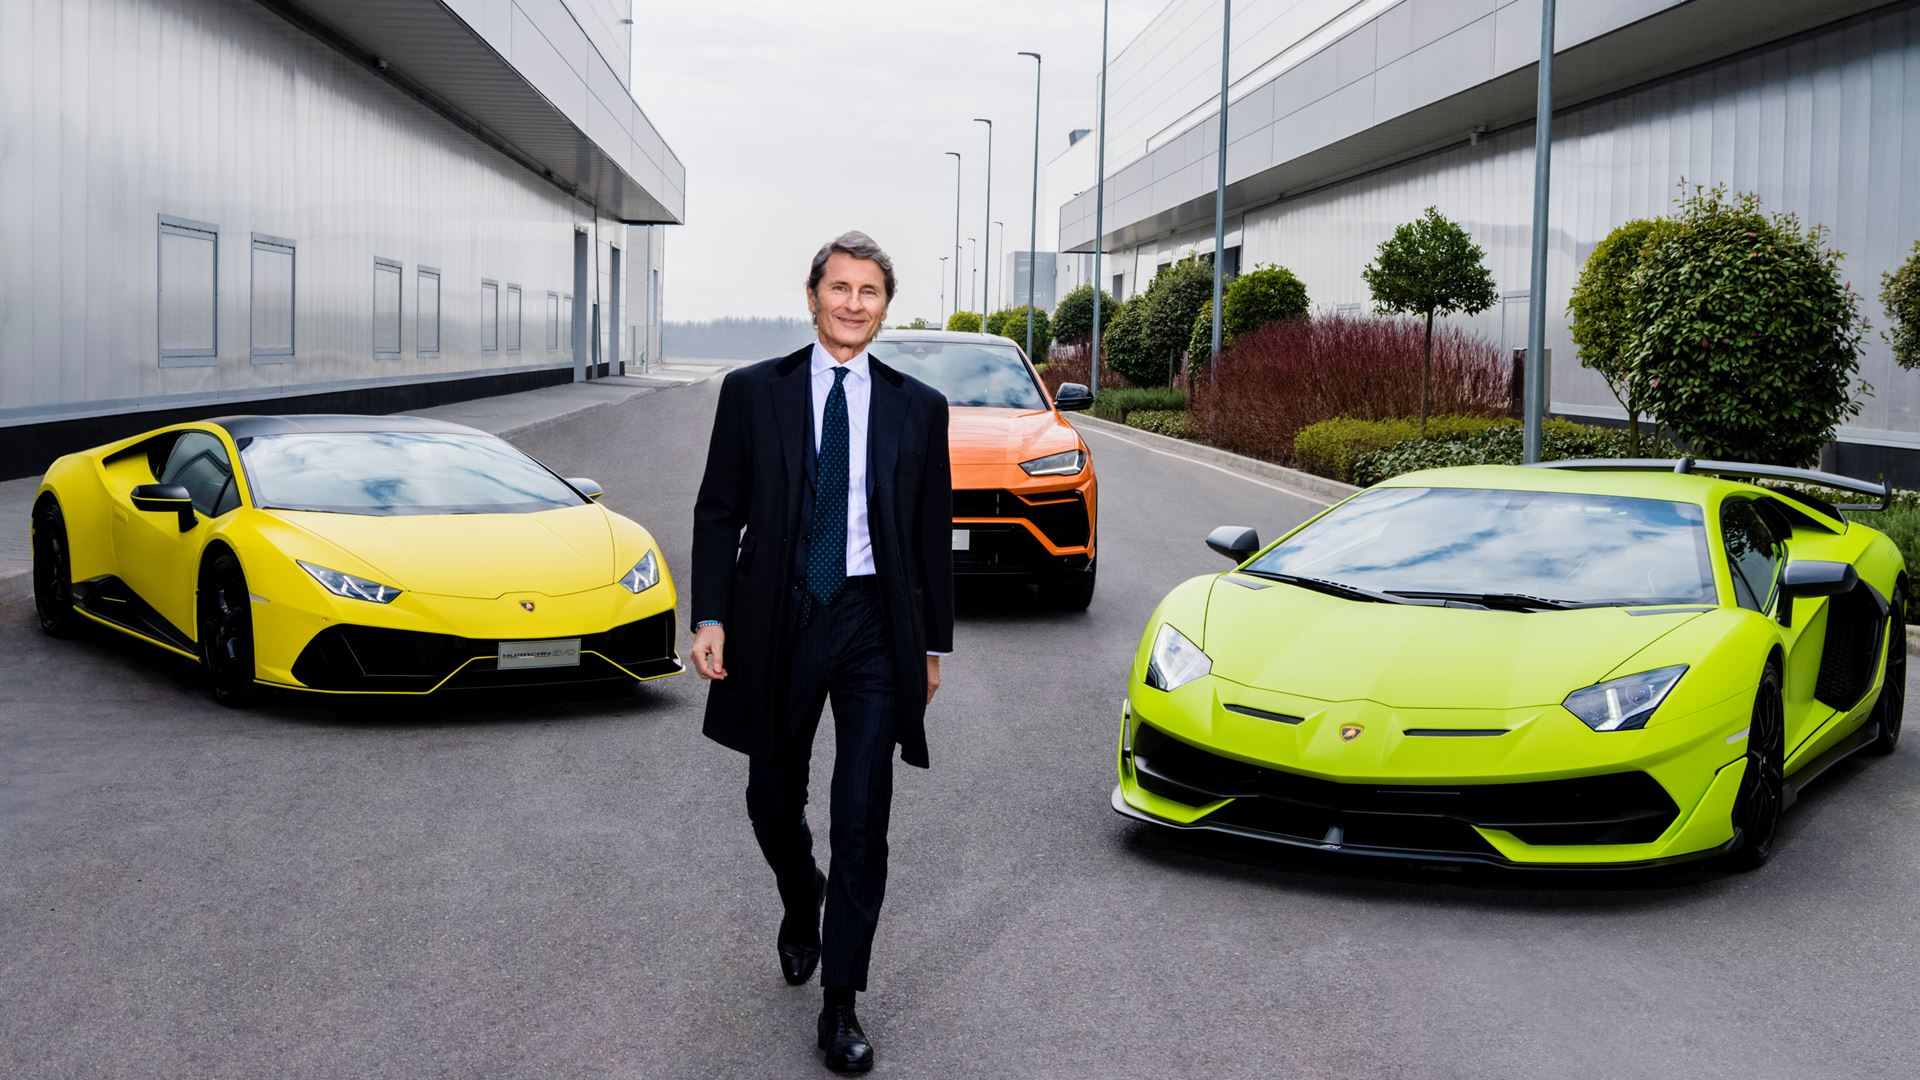 Lamborghini sales: the best half-year ever. Orders taken for the next ten months - Image 6